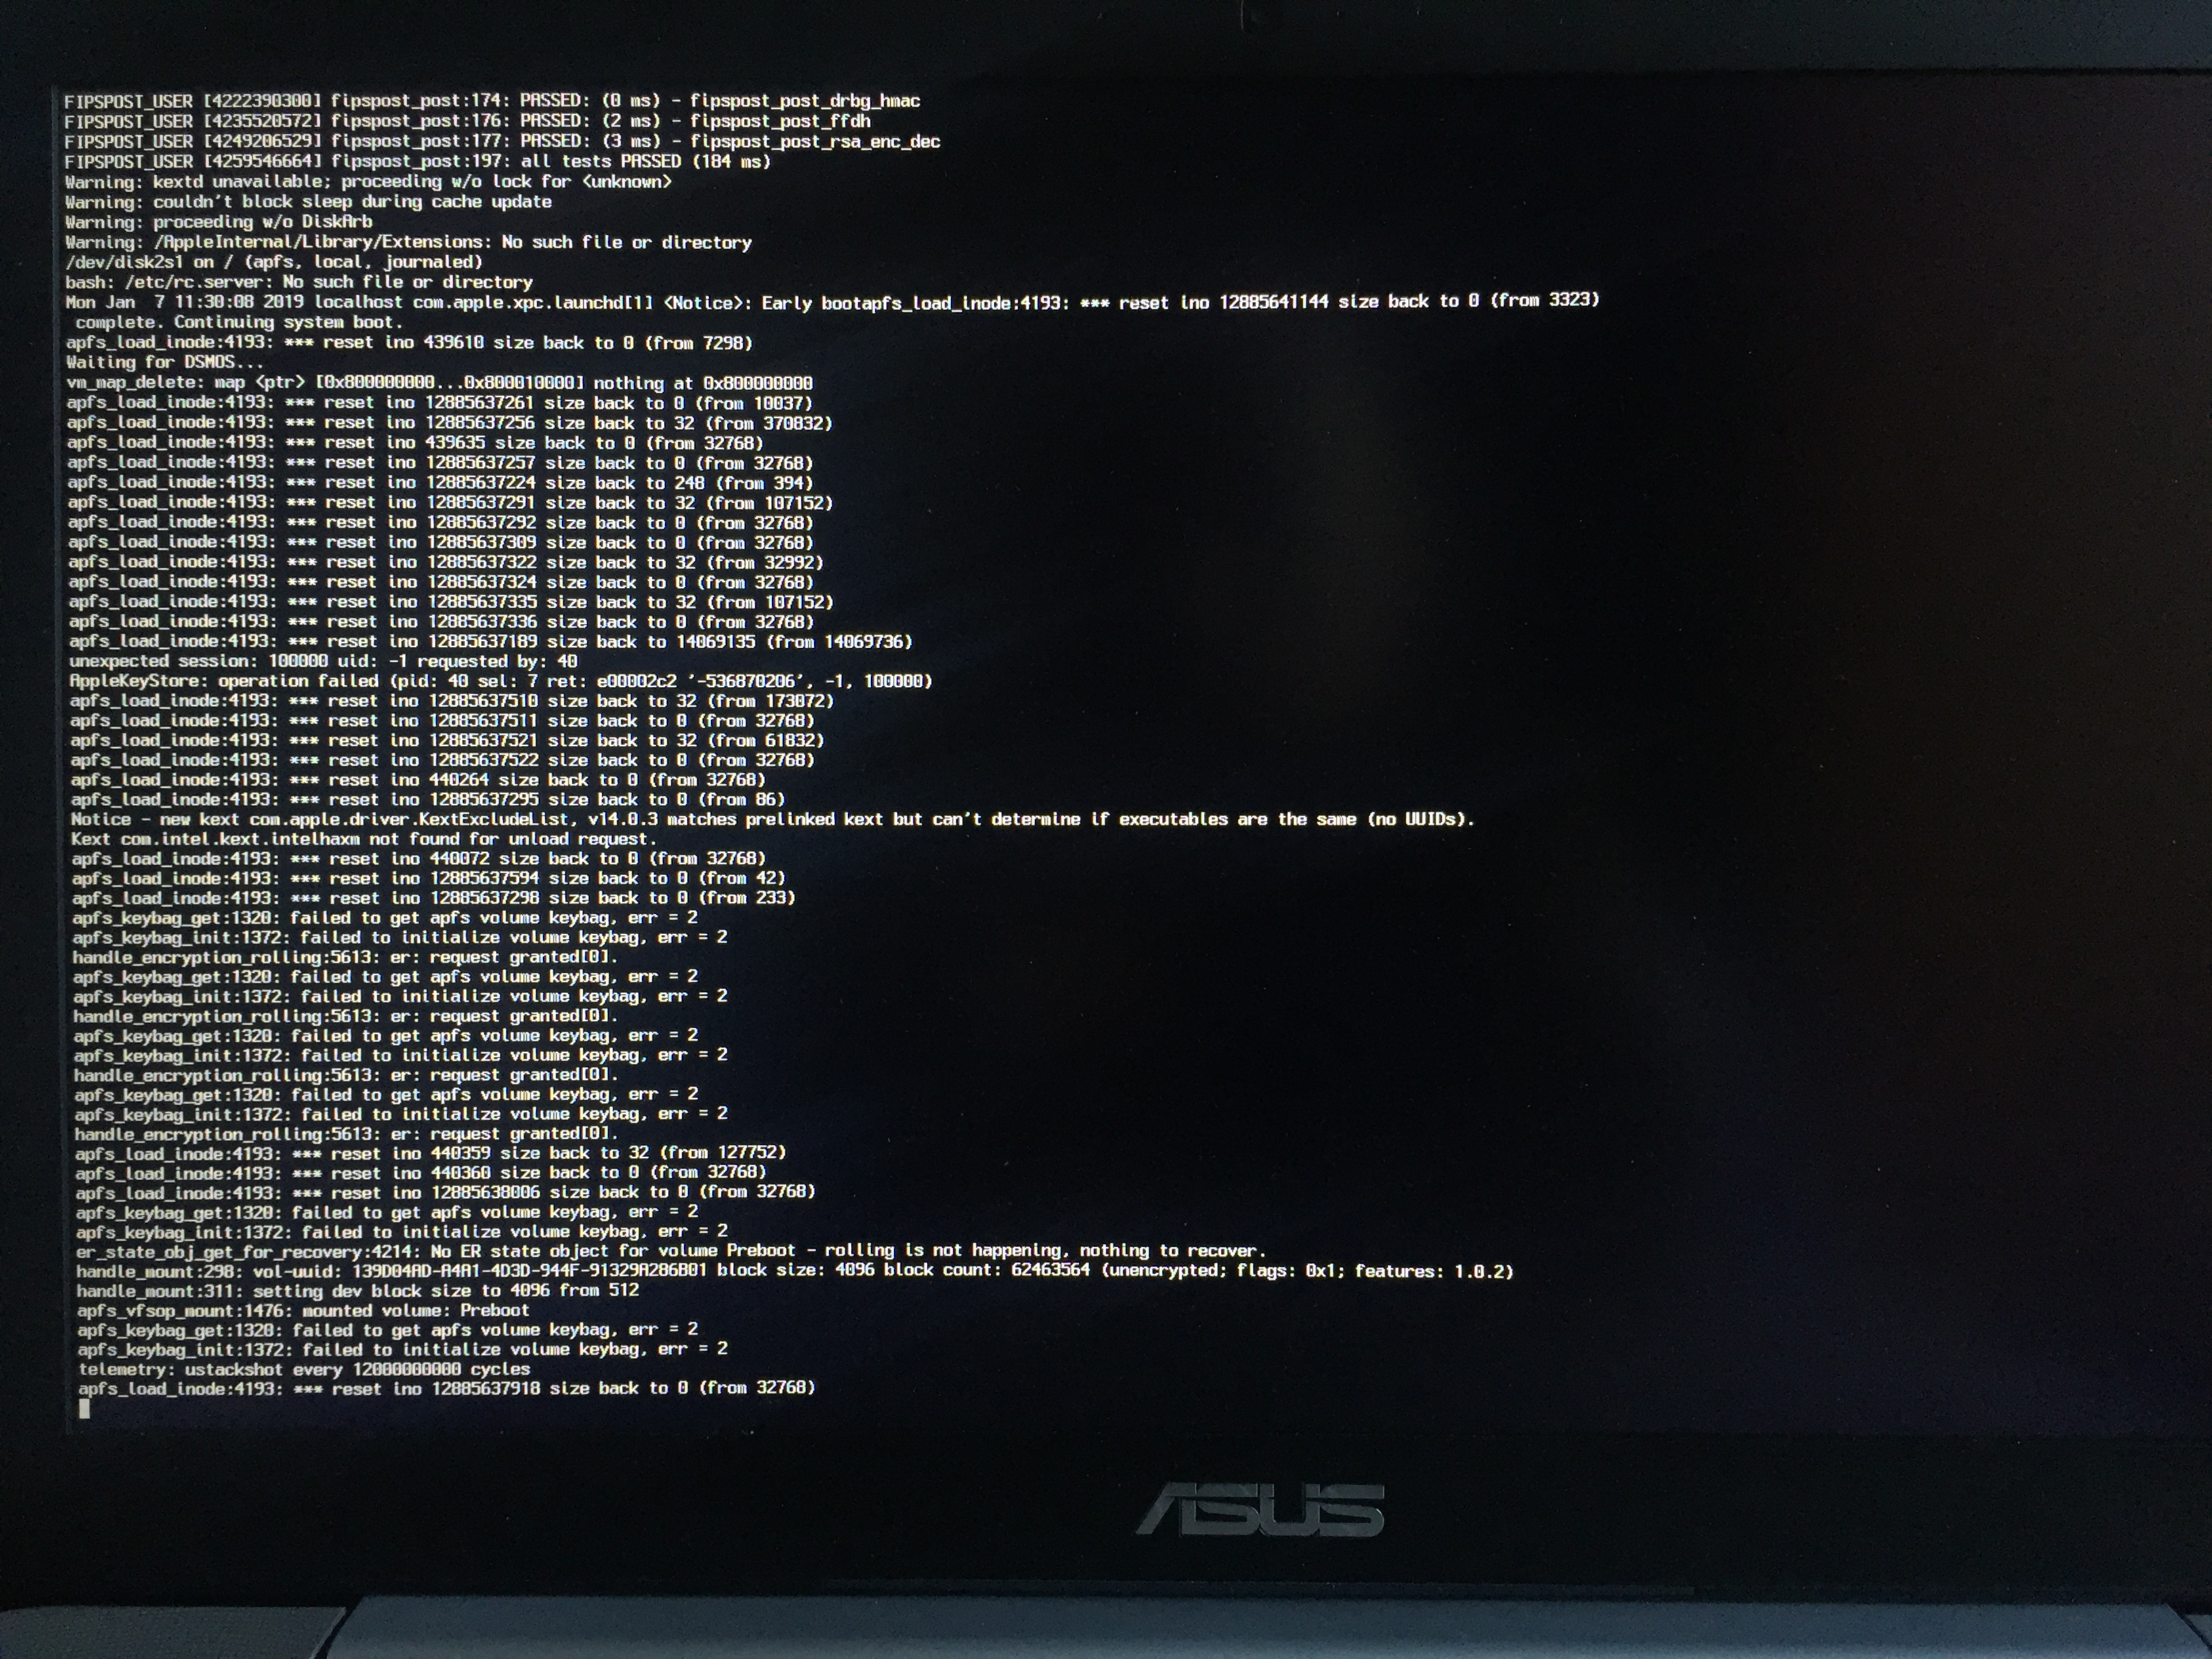 Stuck after (during?) Mojave upgrade directly from Sierra on